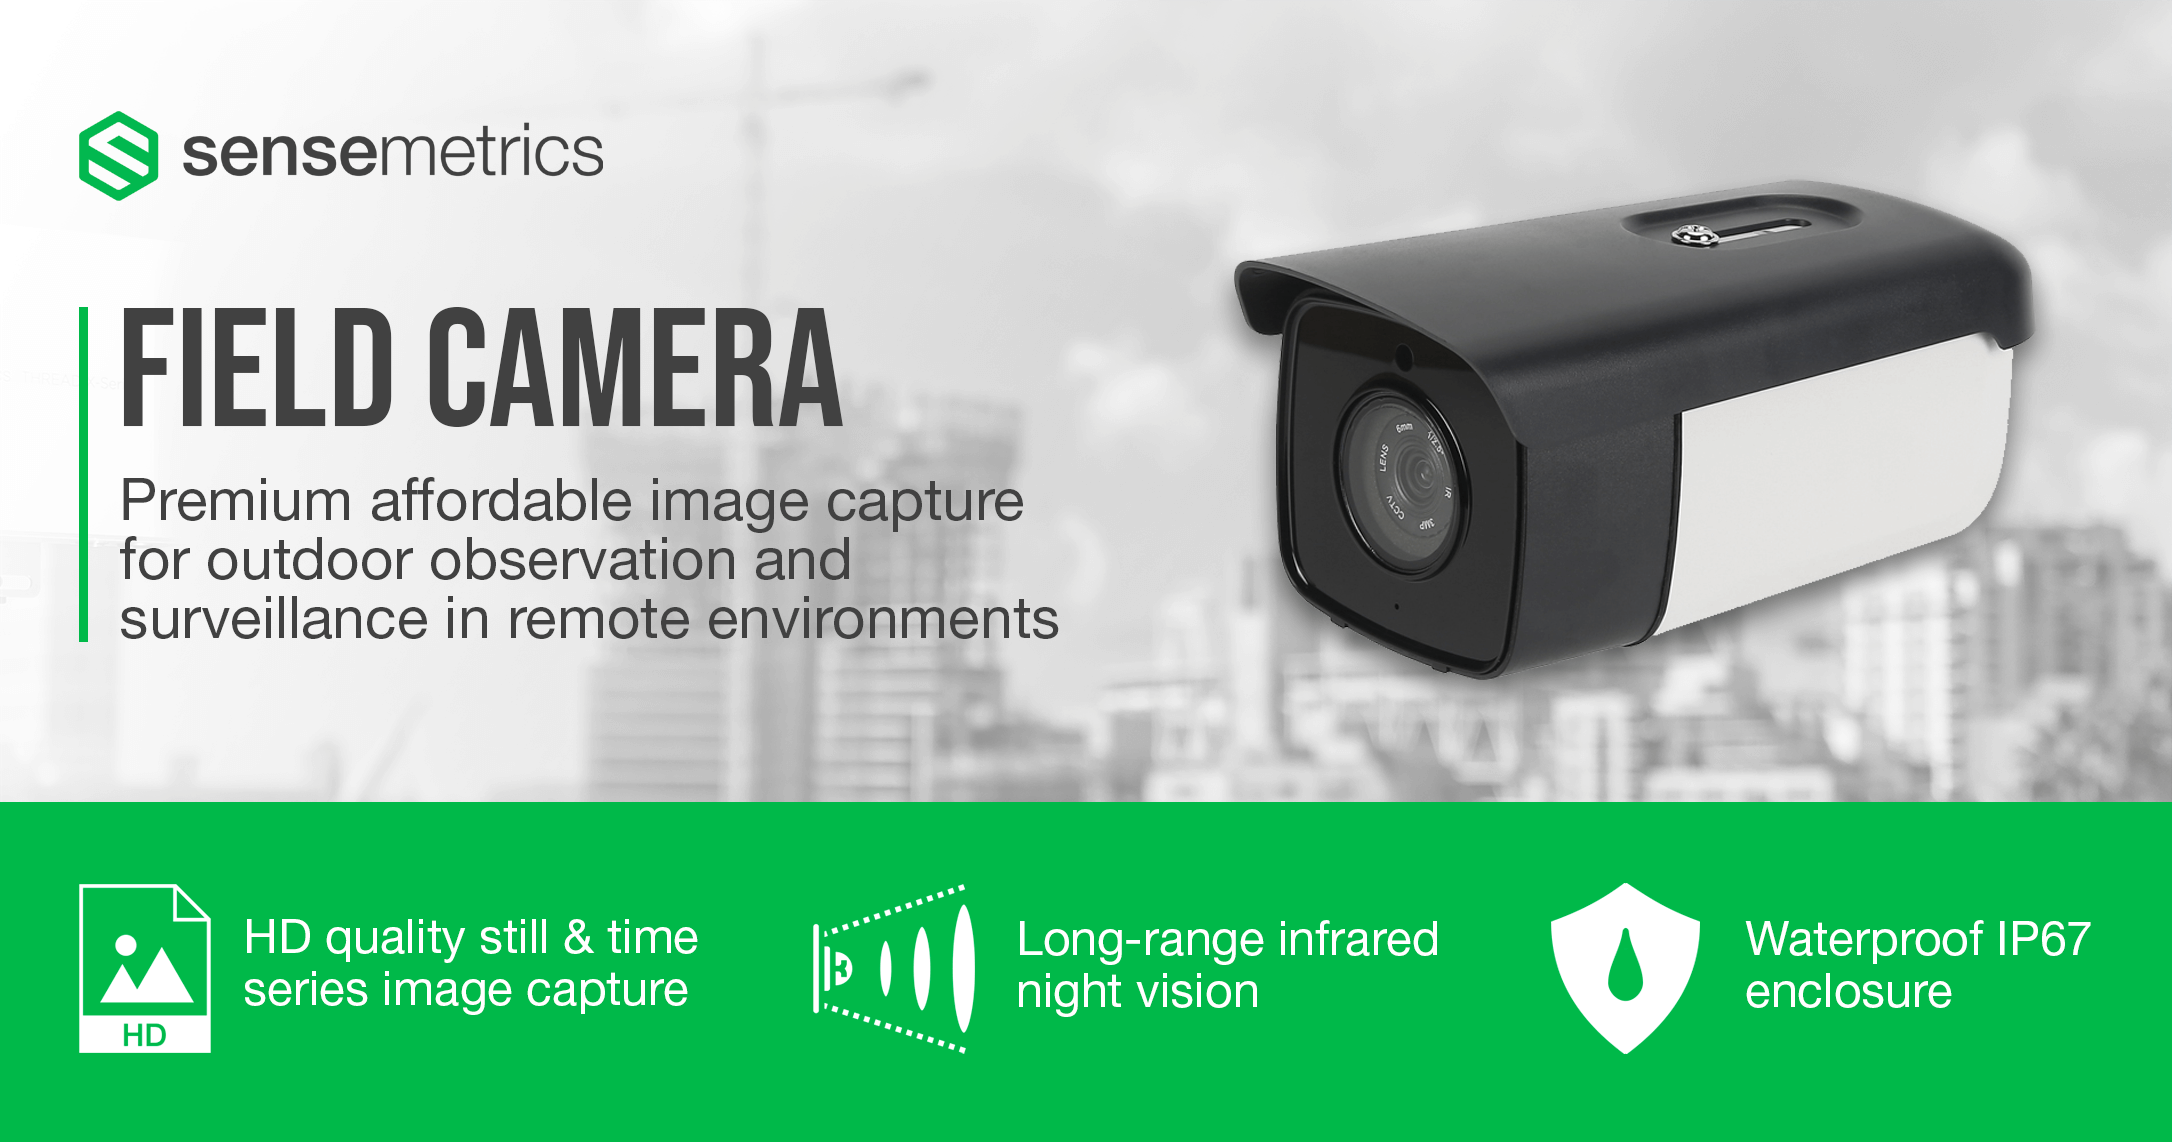 Introducing: Field Camera